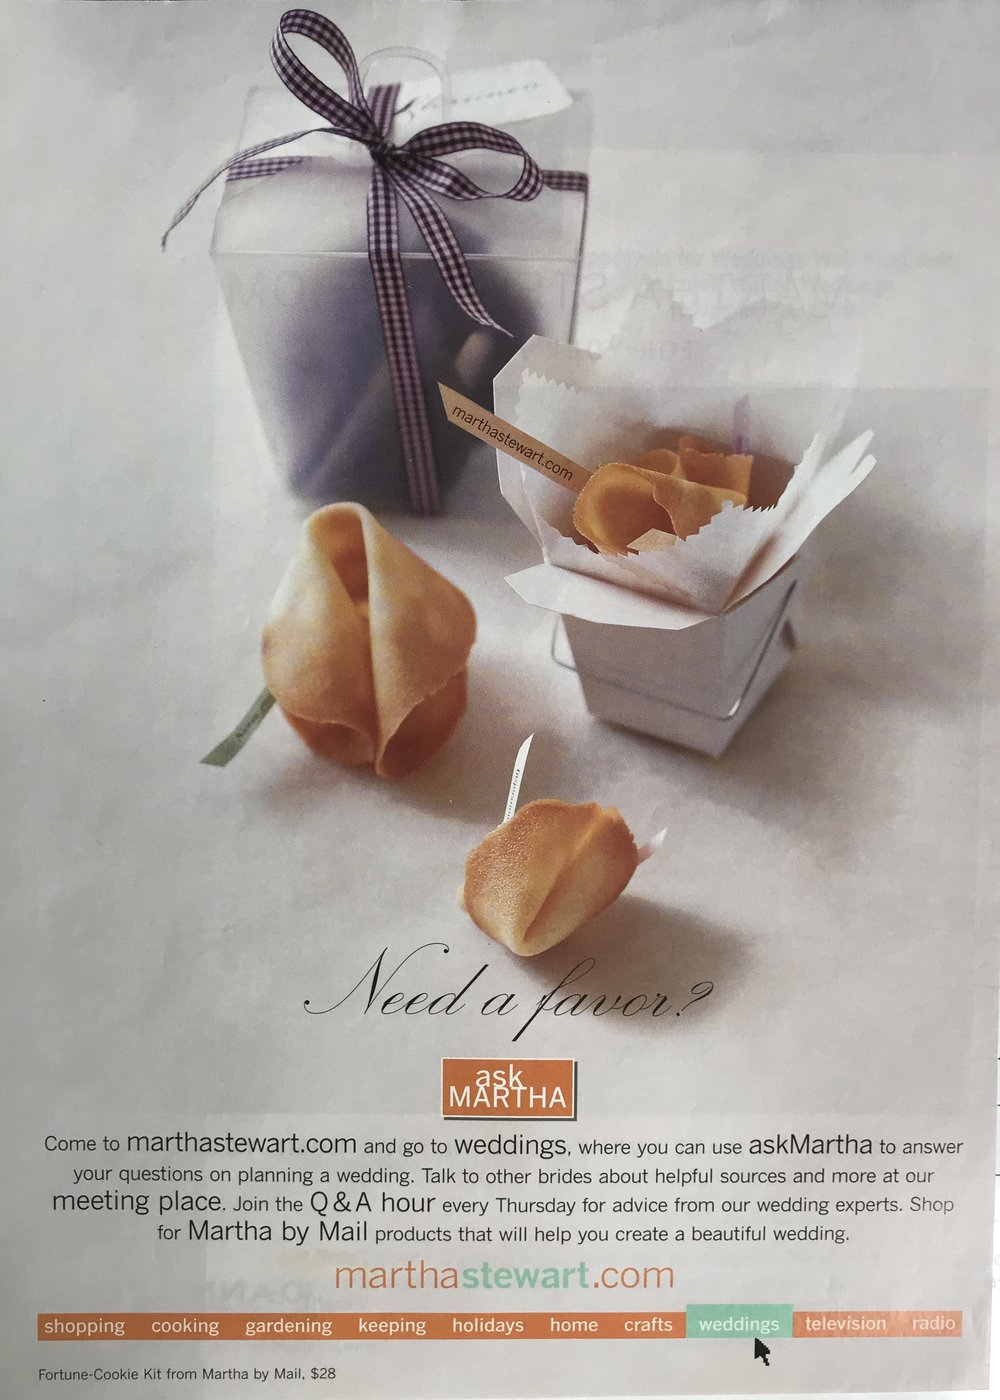 For house ads, Editor-in-Chief Stephen Drucker supplied the concept direction while Lindsay wrote the body and occasionally the headline as well. In the case of this launch ad for askMartha Weddings, when the original ad creative was pulled last minute, Lindsay provided concept direction, headline and body.